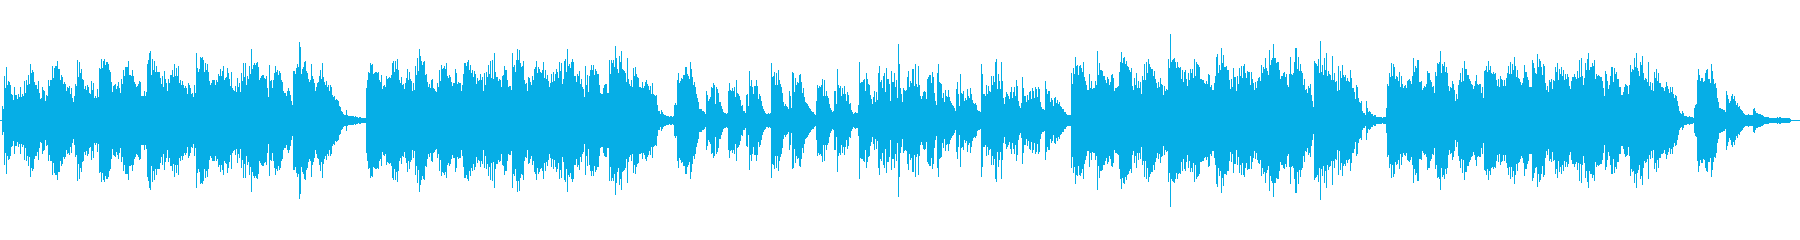 Modern, Japanese-style songs's reproduced waveform